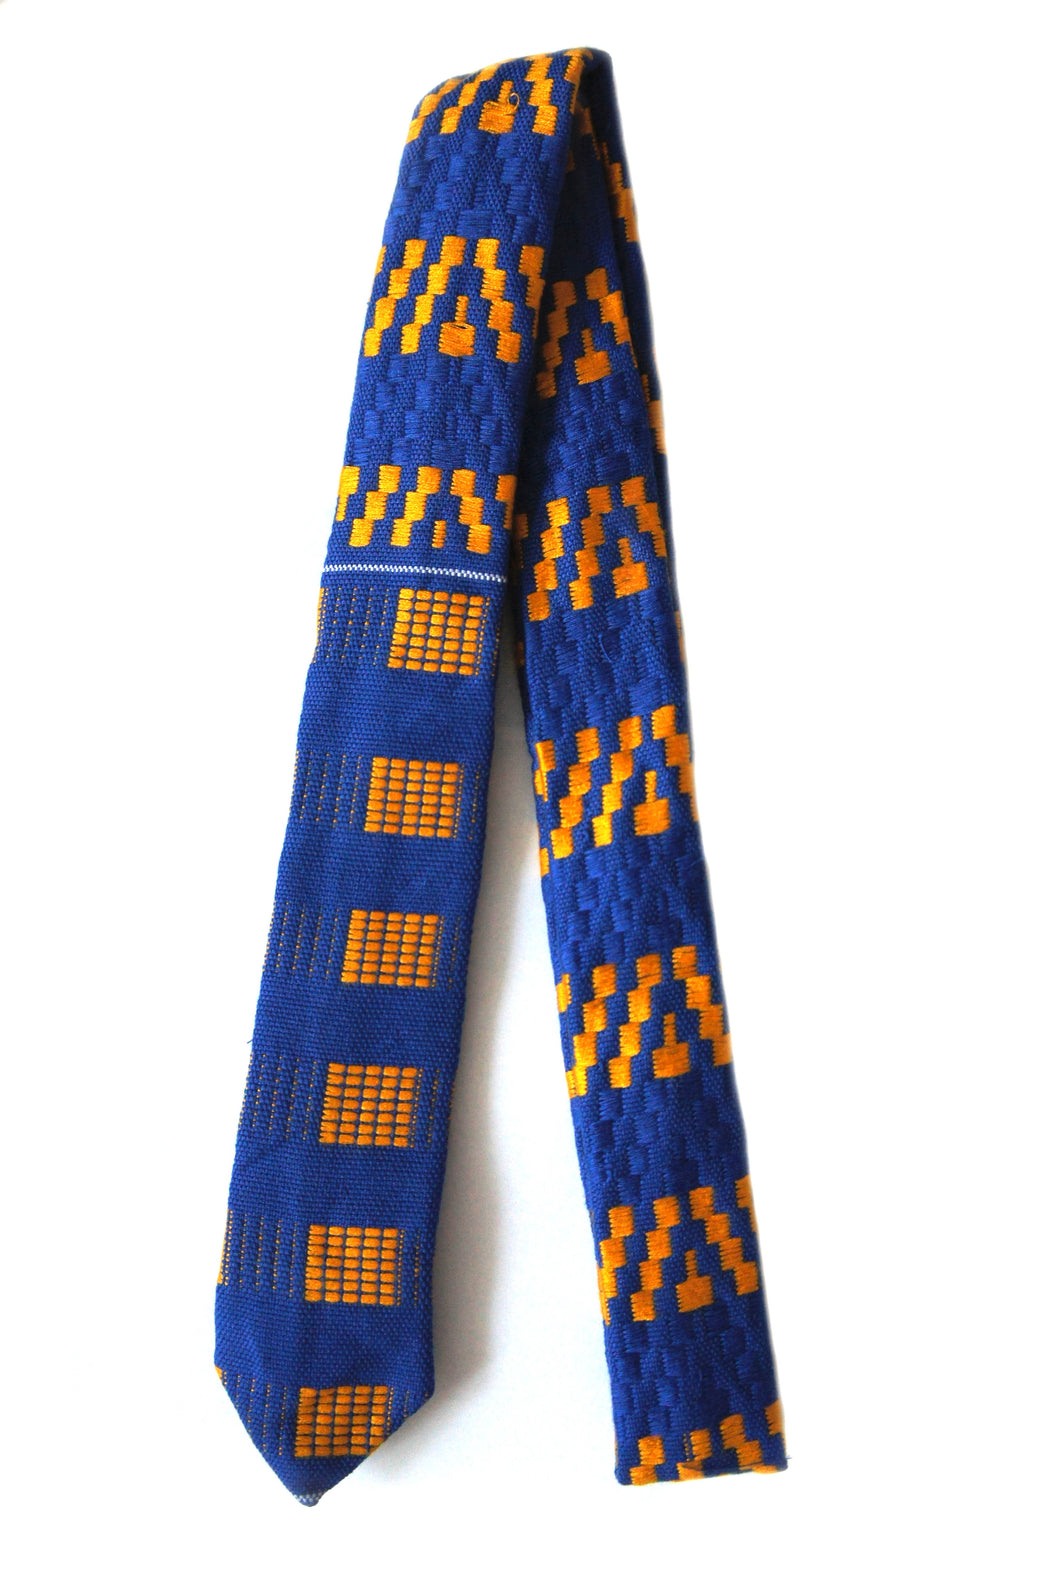 Kente Skinny Tie and Handkerchief Set - Royal Blue & Yellow - Bow Tie Set - Ama Select